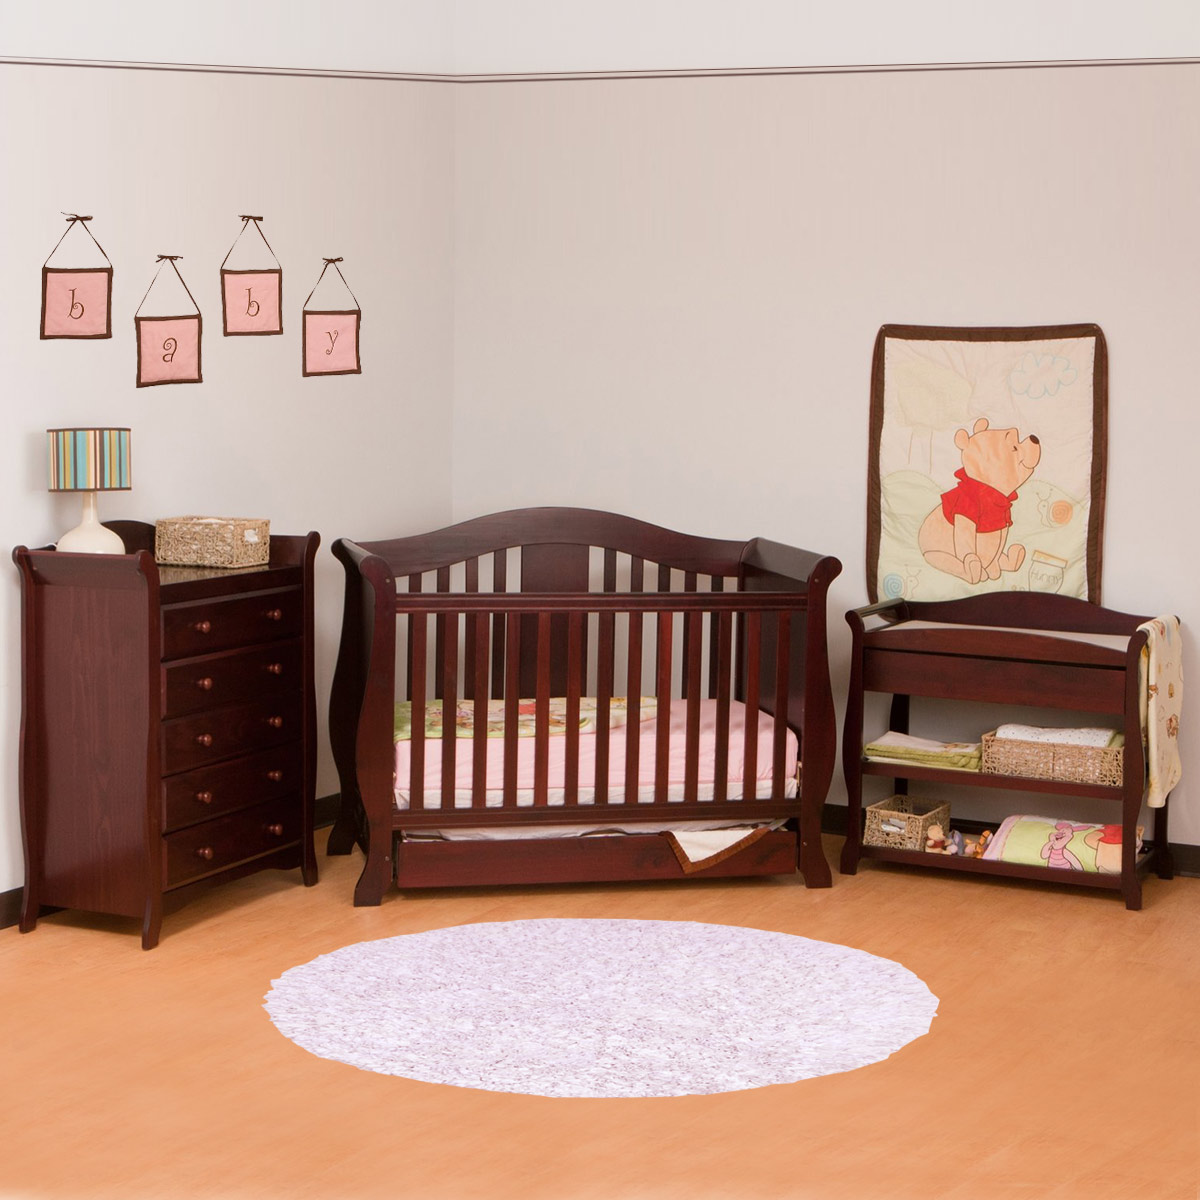 Storkcraft 3 Piece Nursery Set Vittoria Convertible Crib Aspen Changing Table And Avalon 5 Drawer Dresser In Cherry Free Shipping